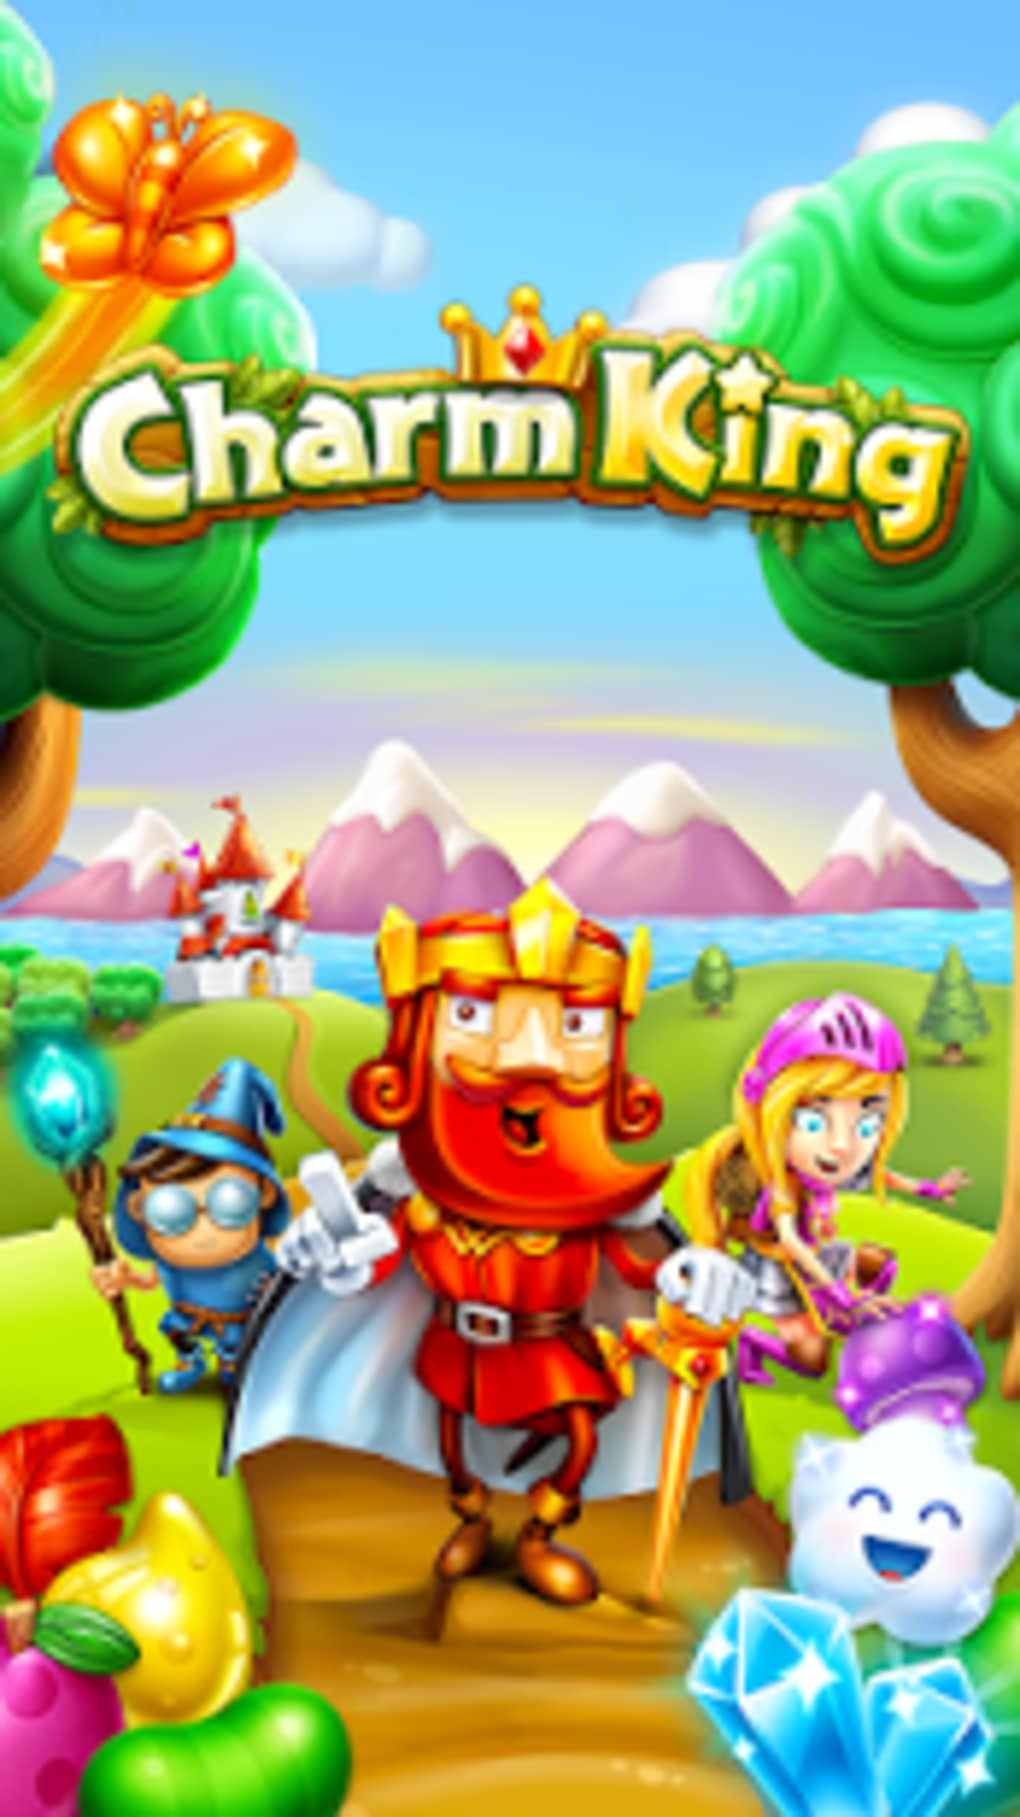 Charm King Tipps